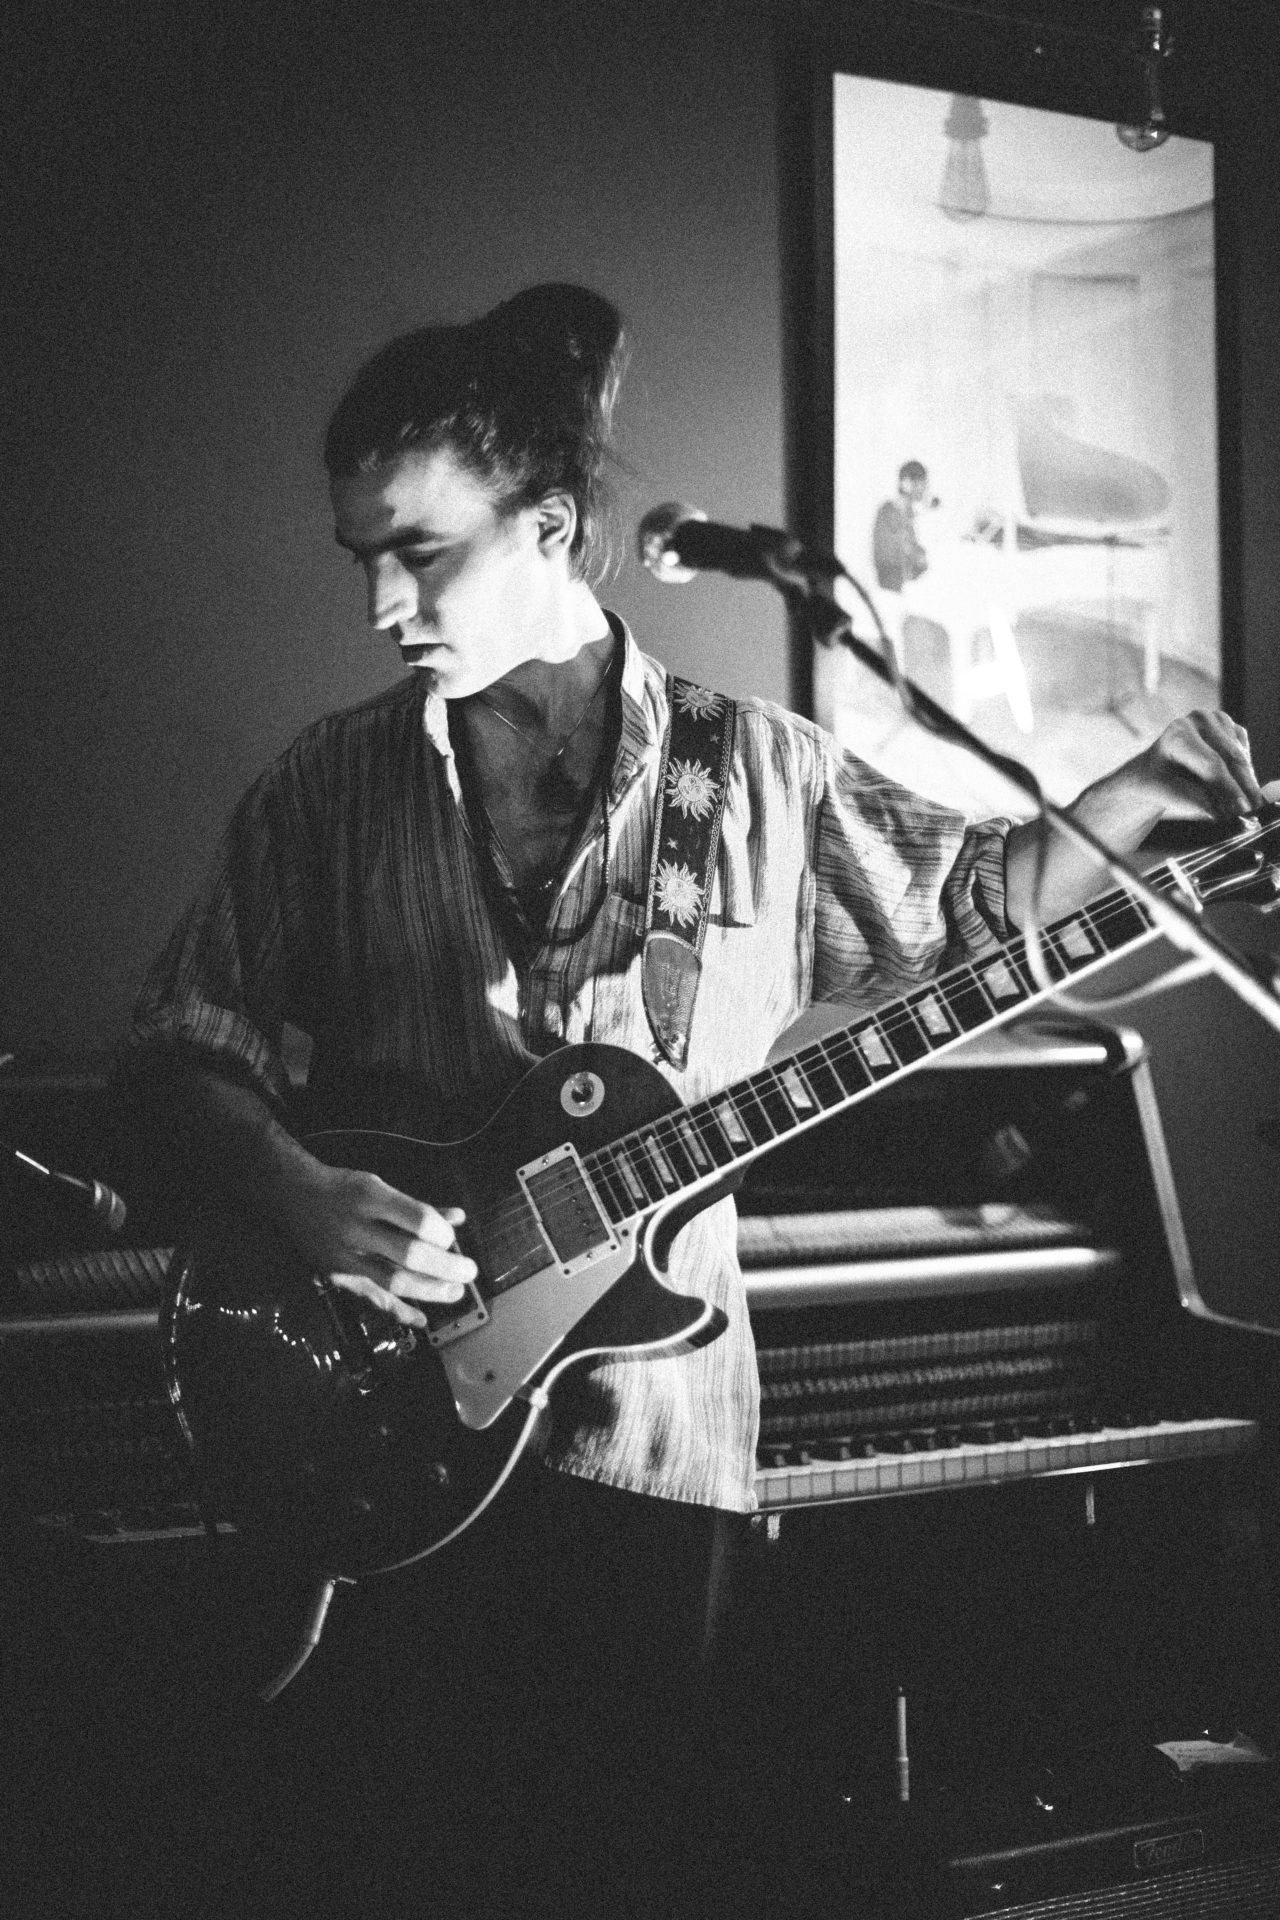 Black and White photo of David Smale tuning a guitar